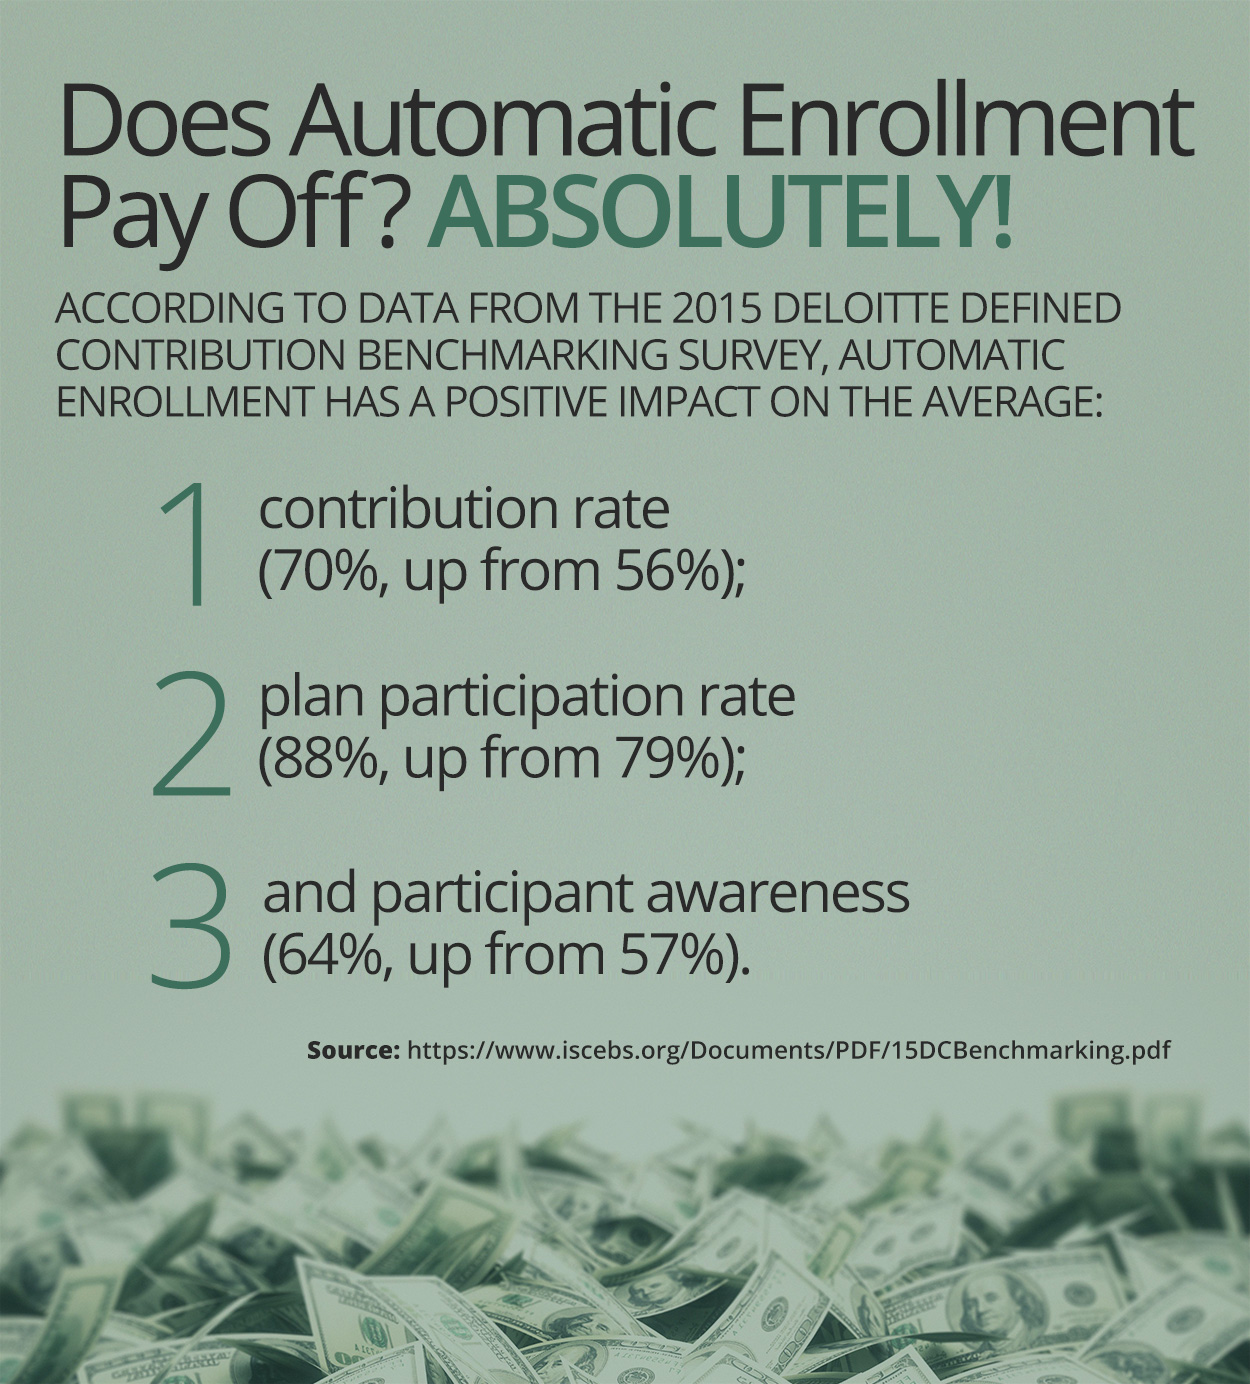 INFOGRAPHIC: Does Automatic Enrollment Pay Off